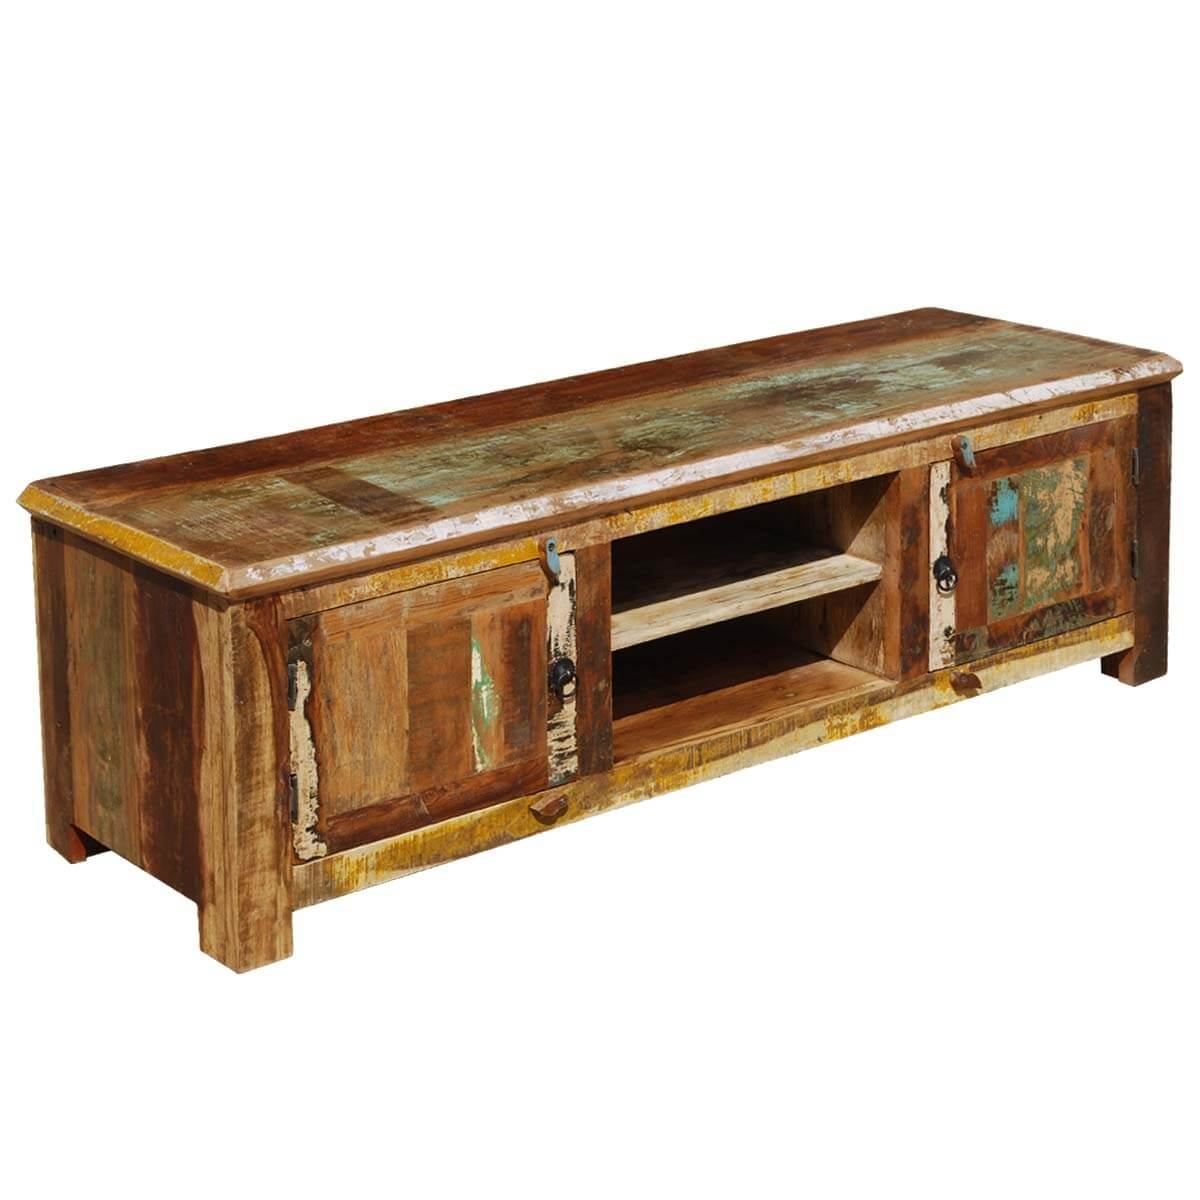 Reclaimed Wood Media Console Cabinet Rustic Distressed Storage